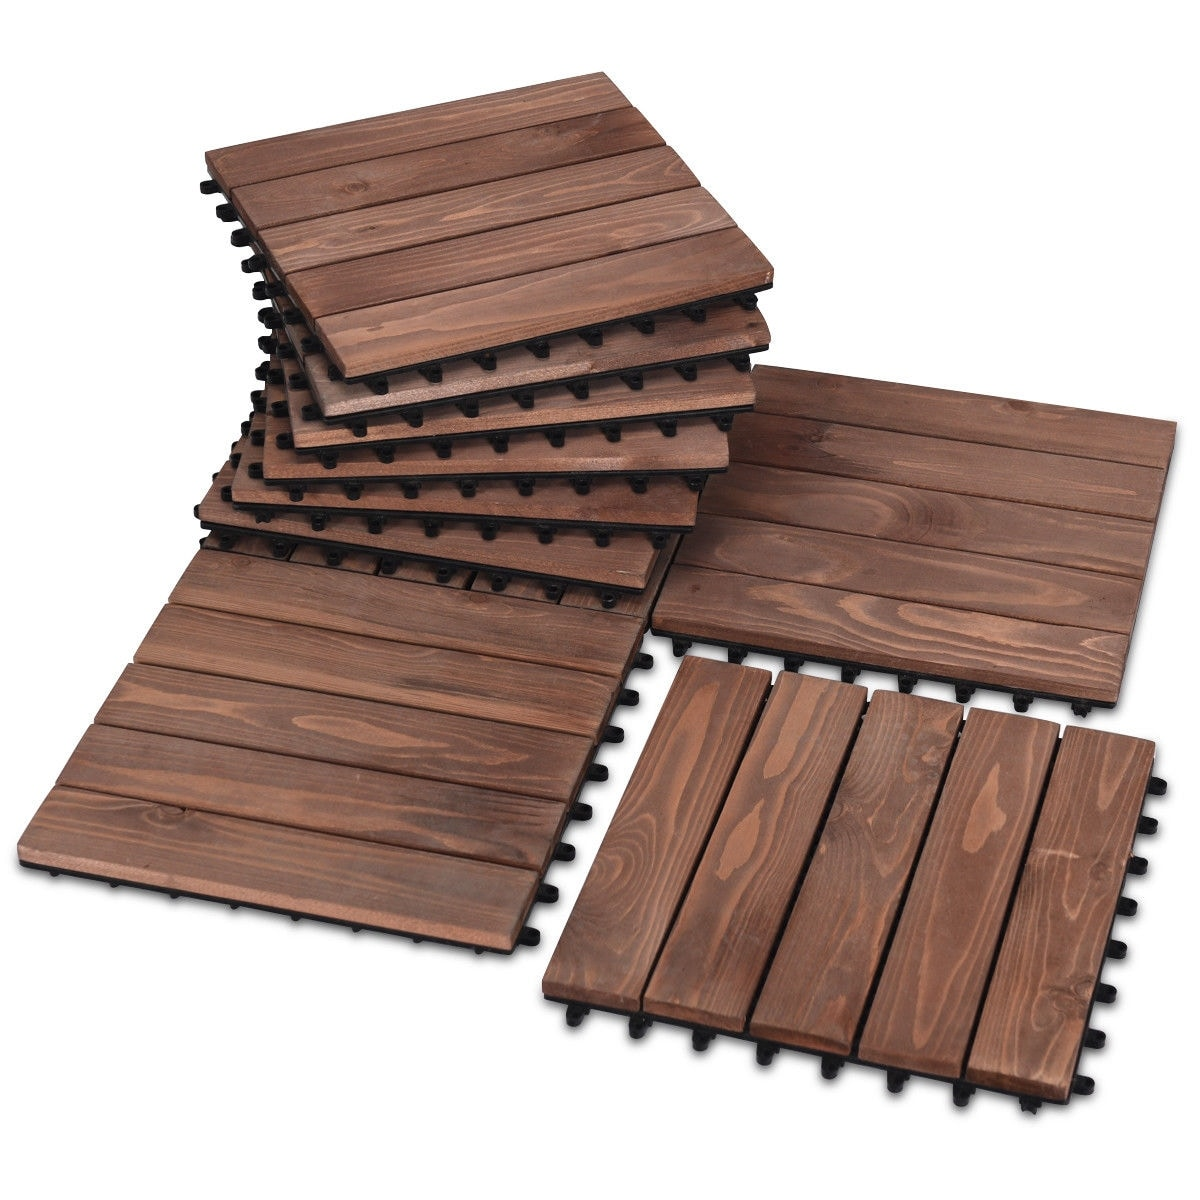 Floor Interlocking Wood Patio Tiles